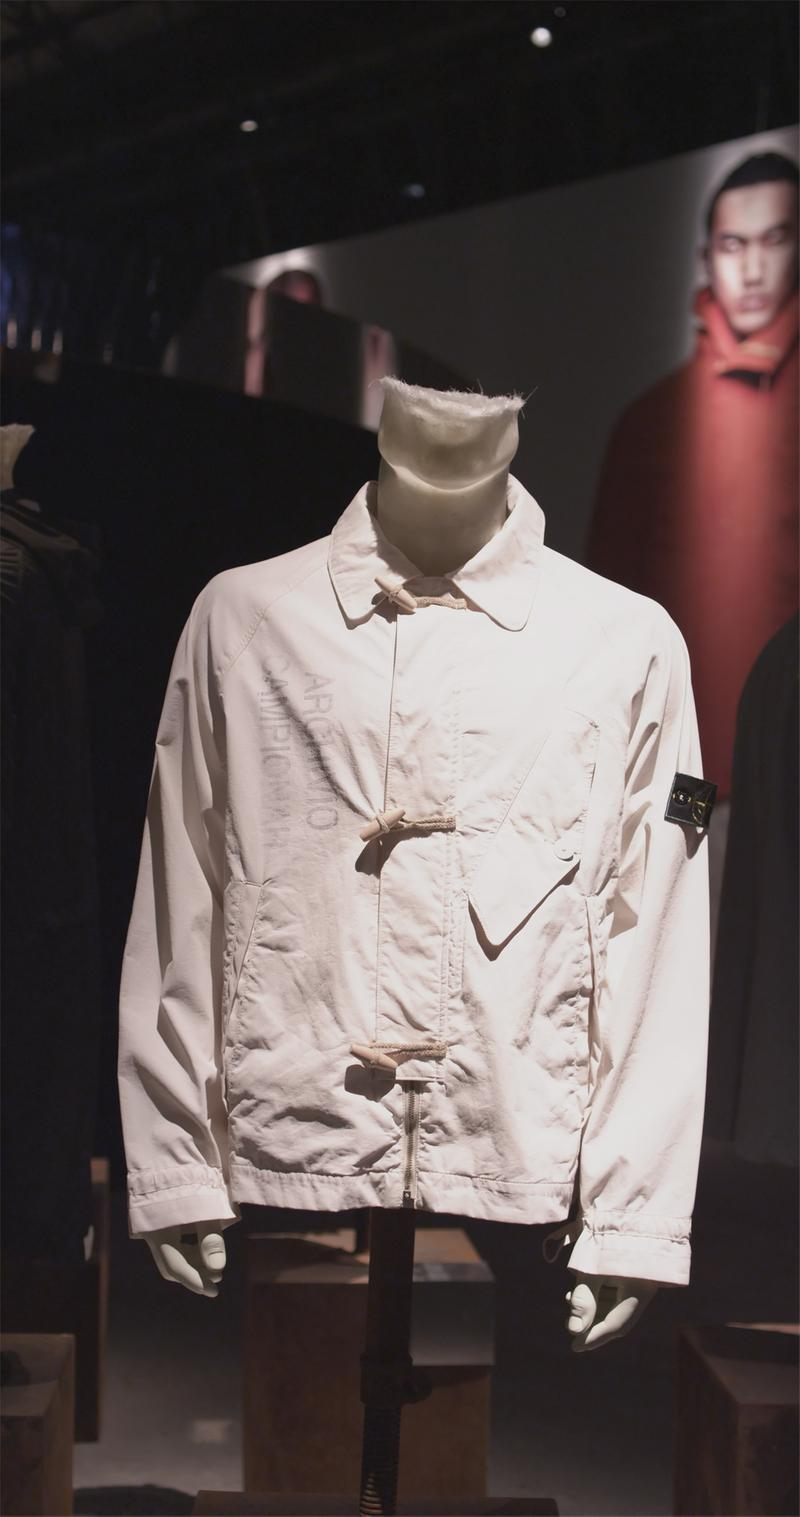 Off white jacket displayed on mannequin bust with toggle closures, collar, side pockets, Stone Island badge on upper left sleeve and faded lettering on the chest